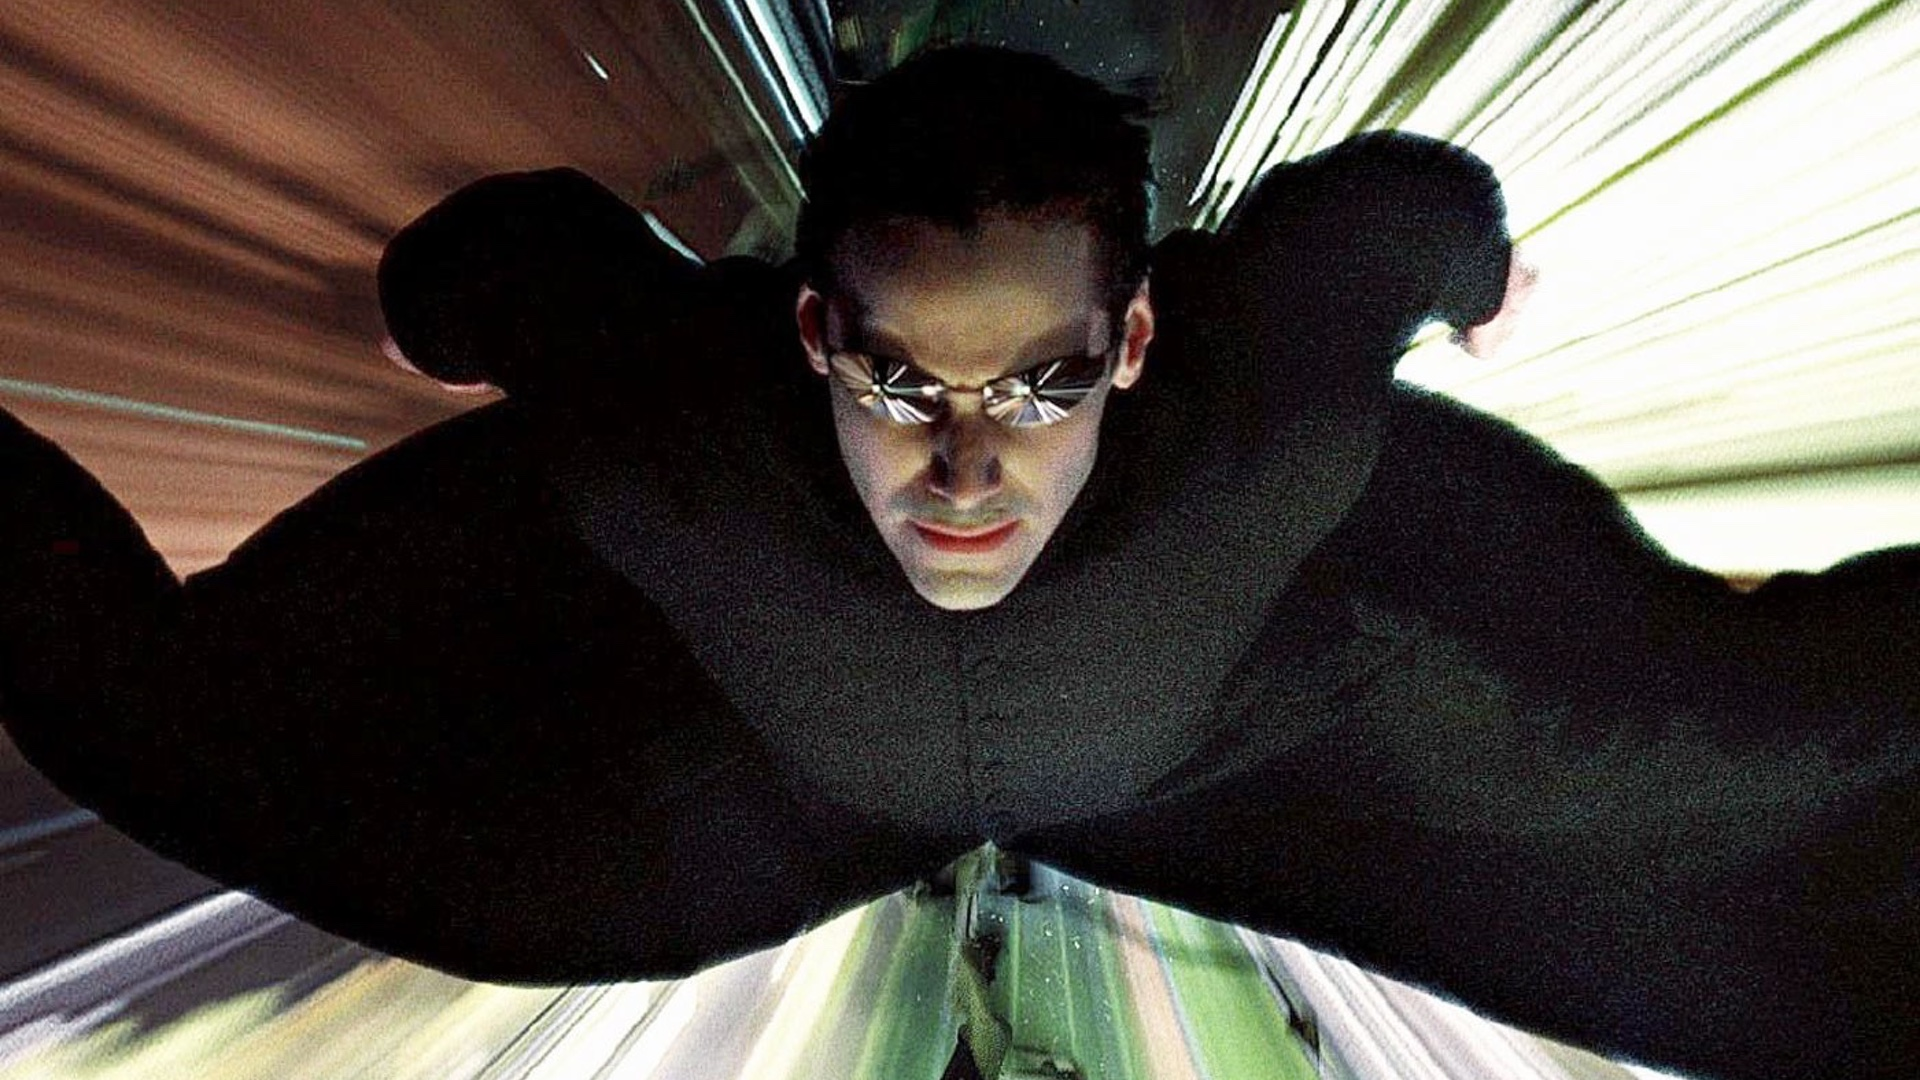 the-matrix-reboot-is-still-moving-forward-at-wb-and-the-wachowskis-will-be-involved-social.jpg